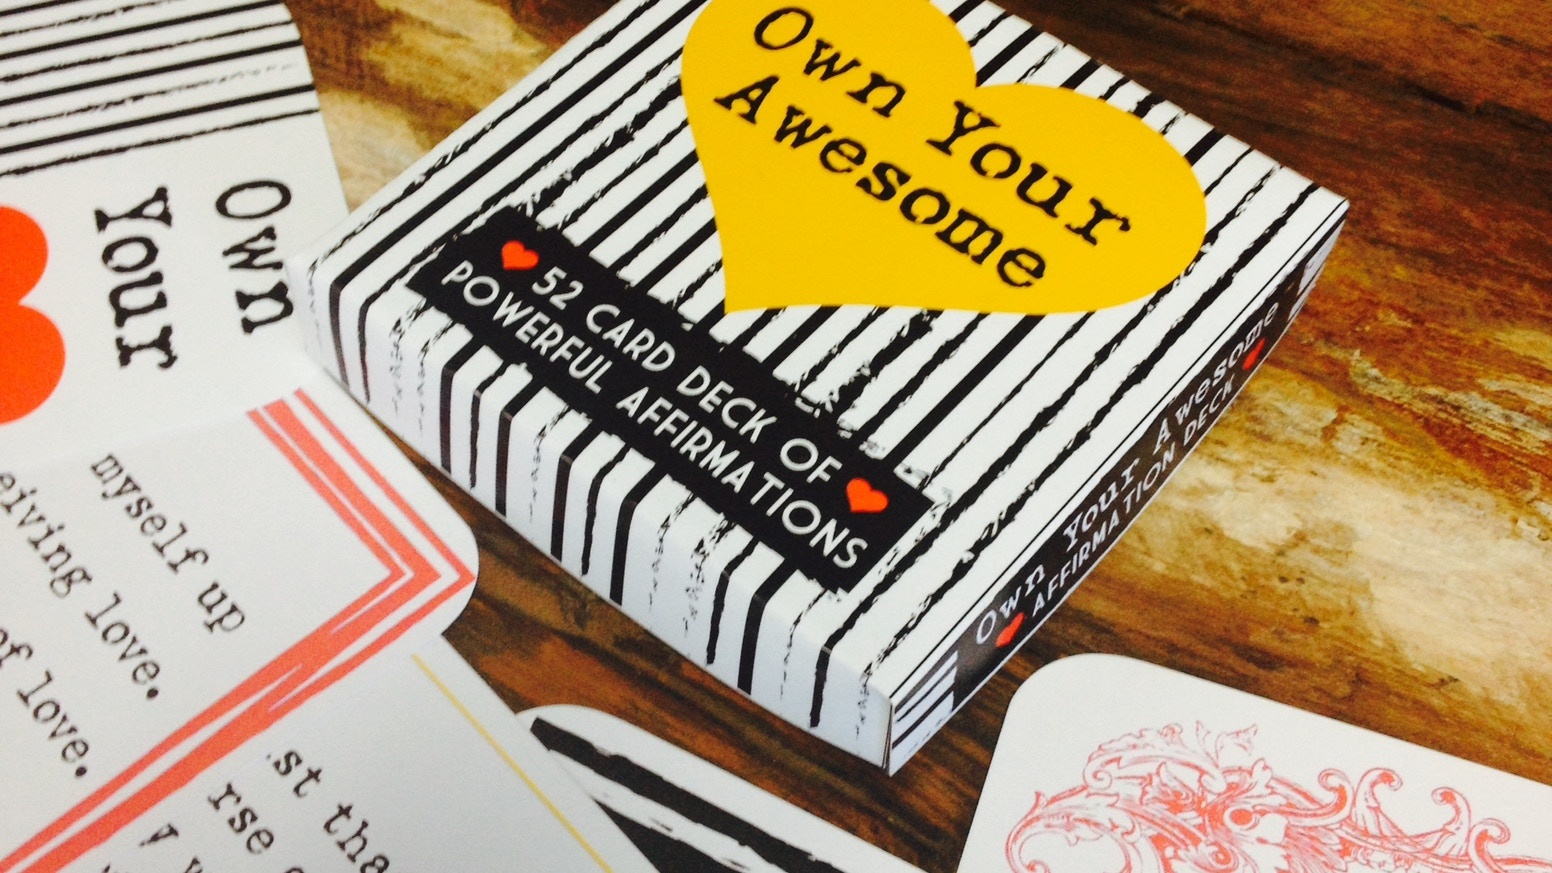 Own your awesome an affirmation deck by tricia huffman kickstarter you are what you think so why not think awesome thoughts altavistaventures Gallery